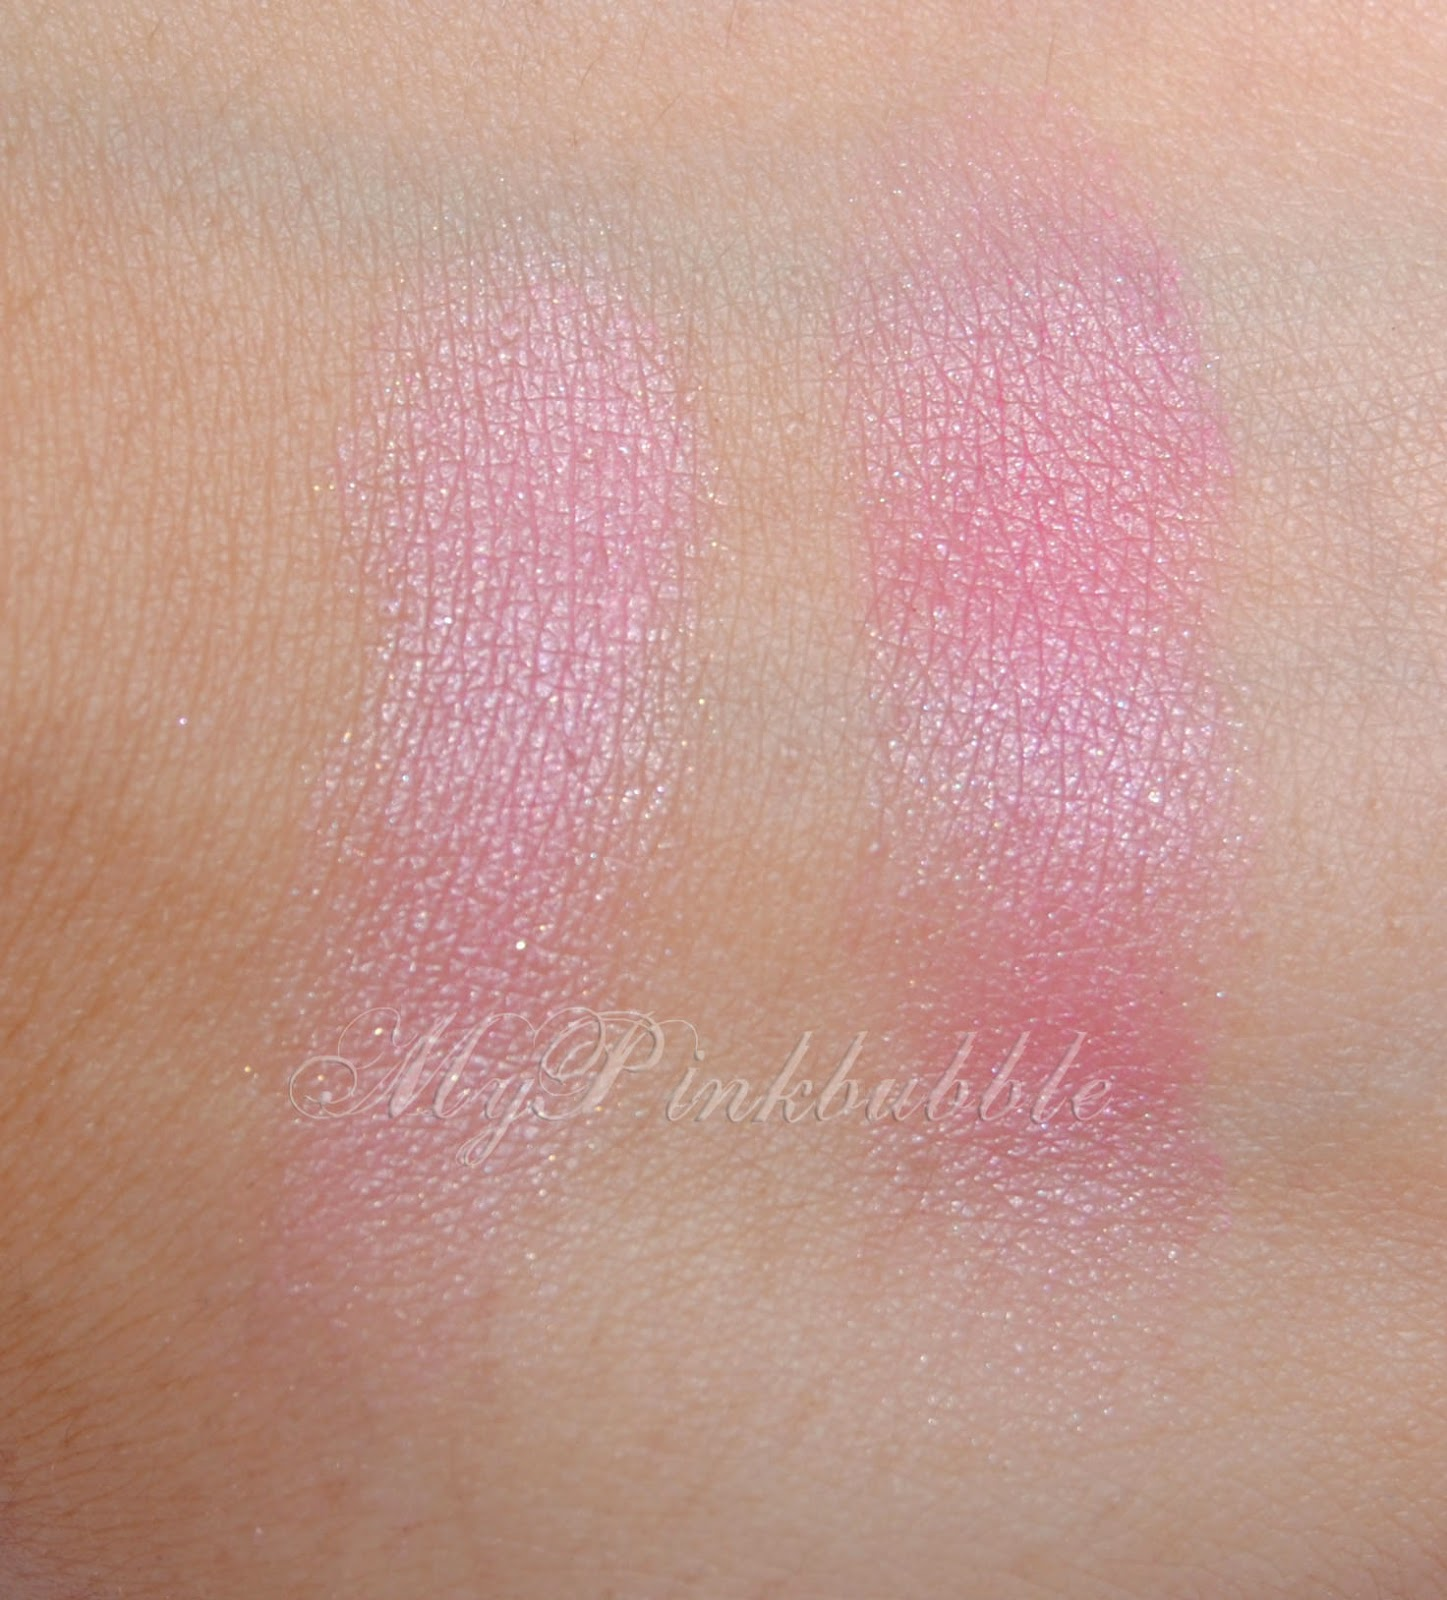 Physicians Formula Cashmere Rose swatch